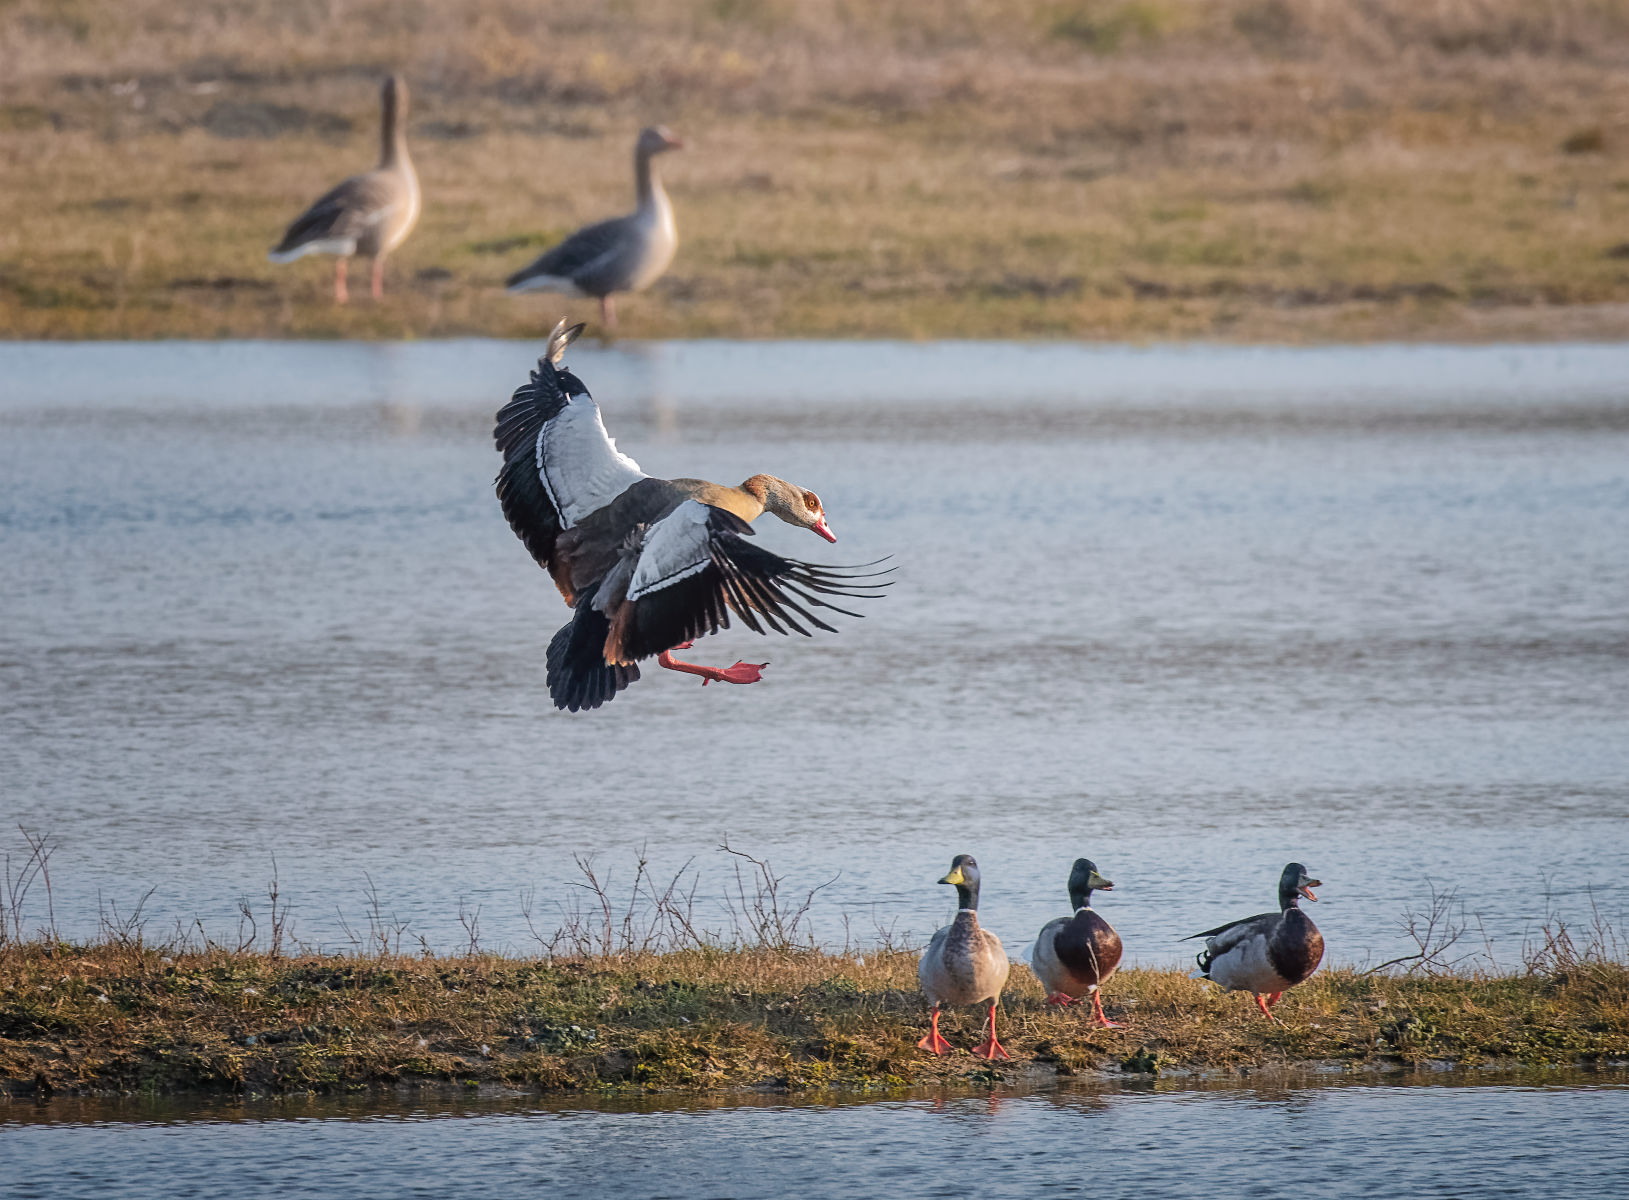 egyptian goose coming in for a landing amid mallards